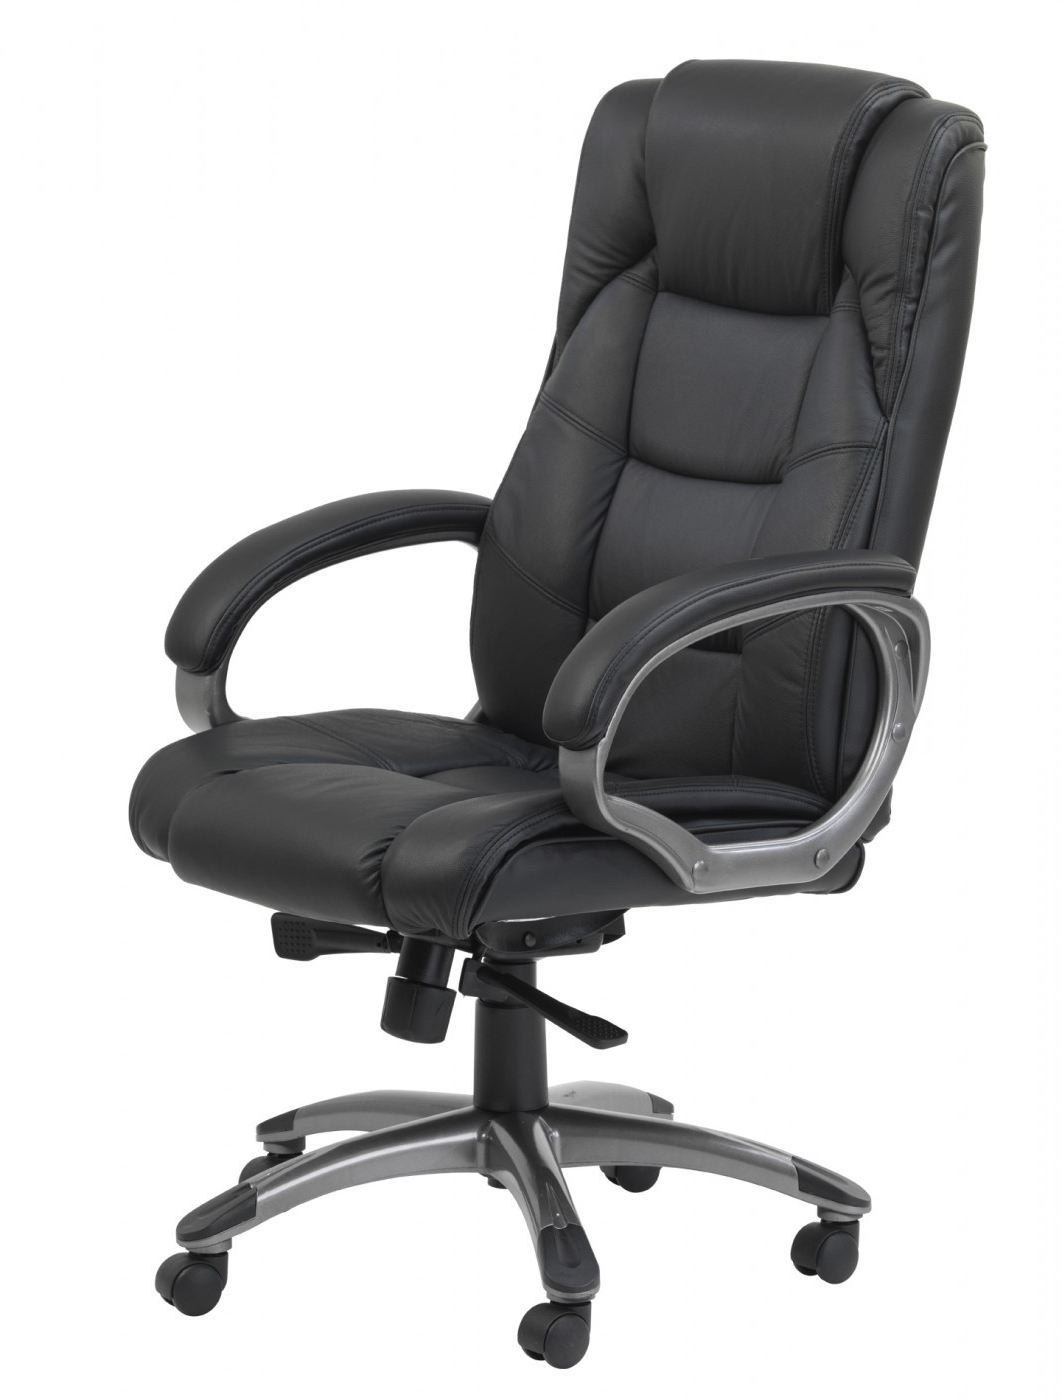 121 Office Furniture (Gallery 11 of 20)